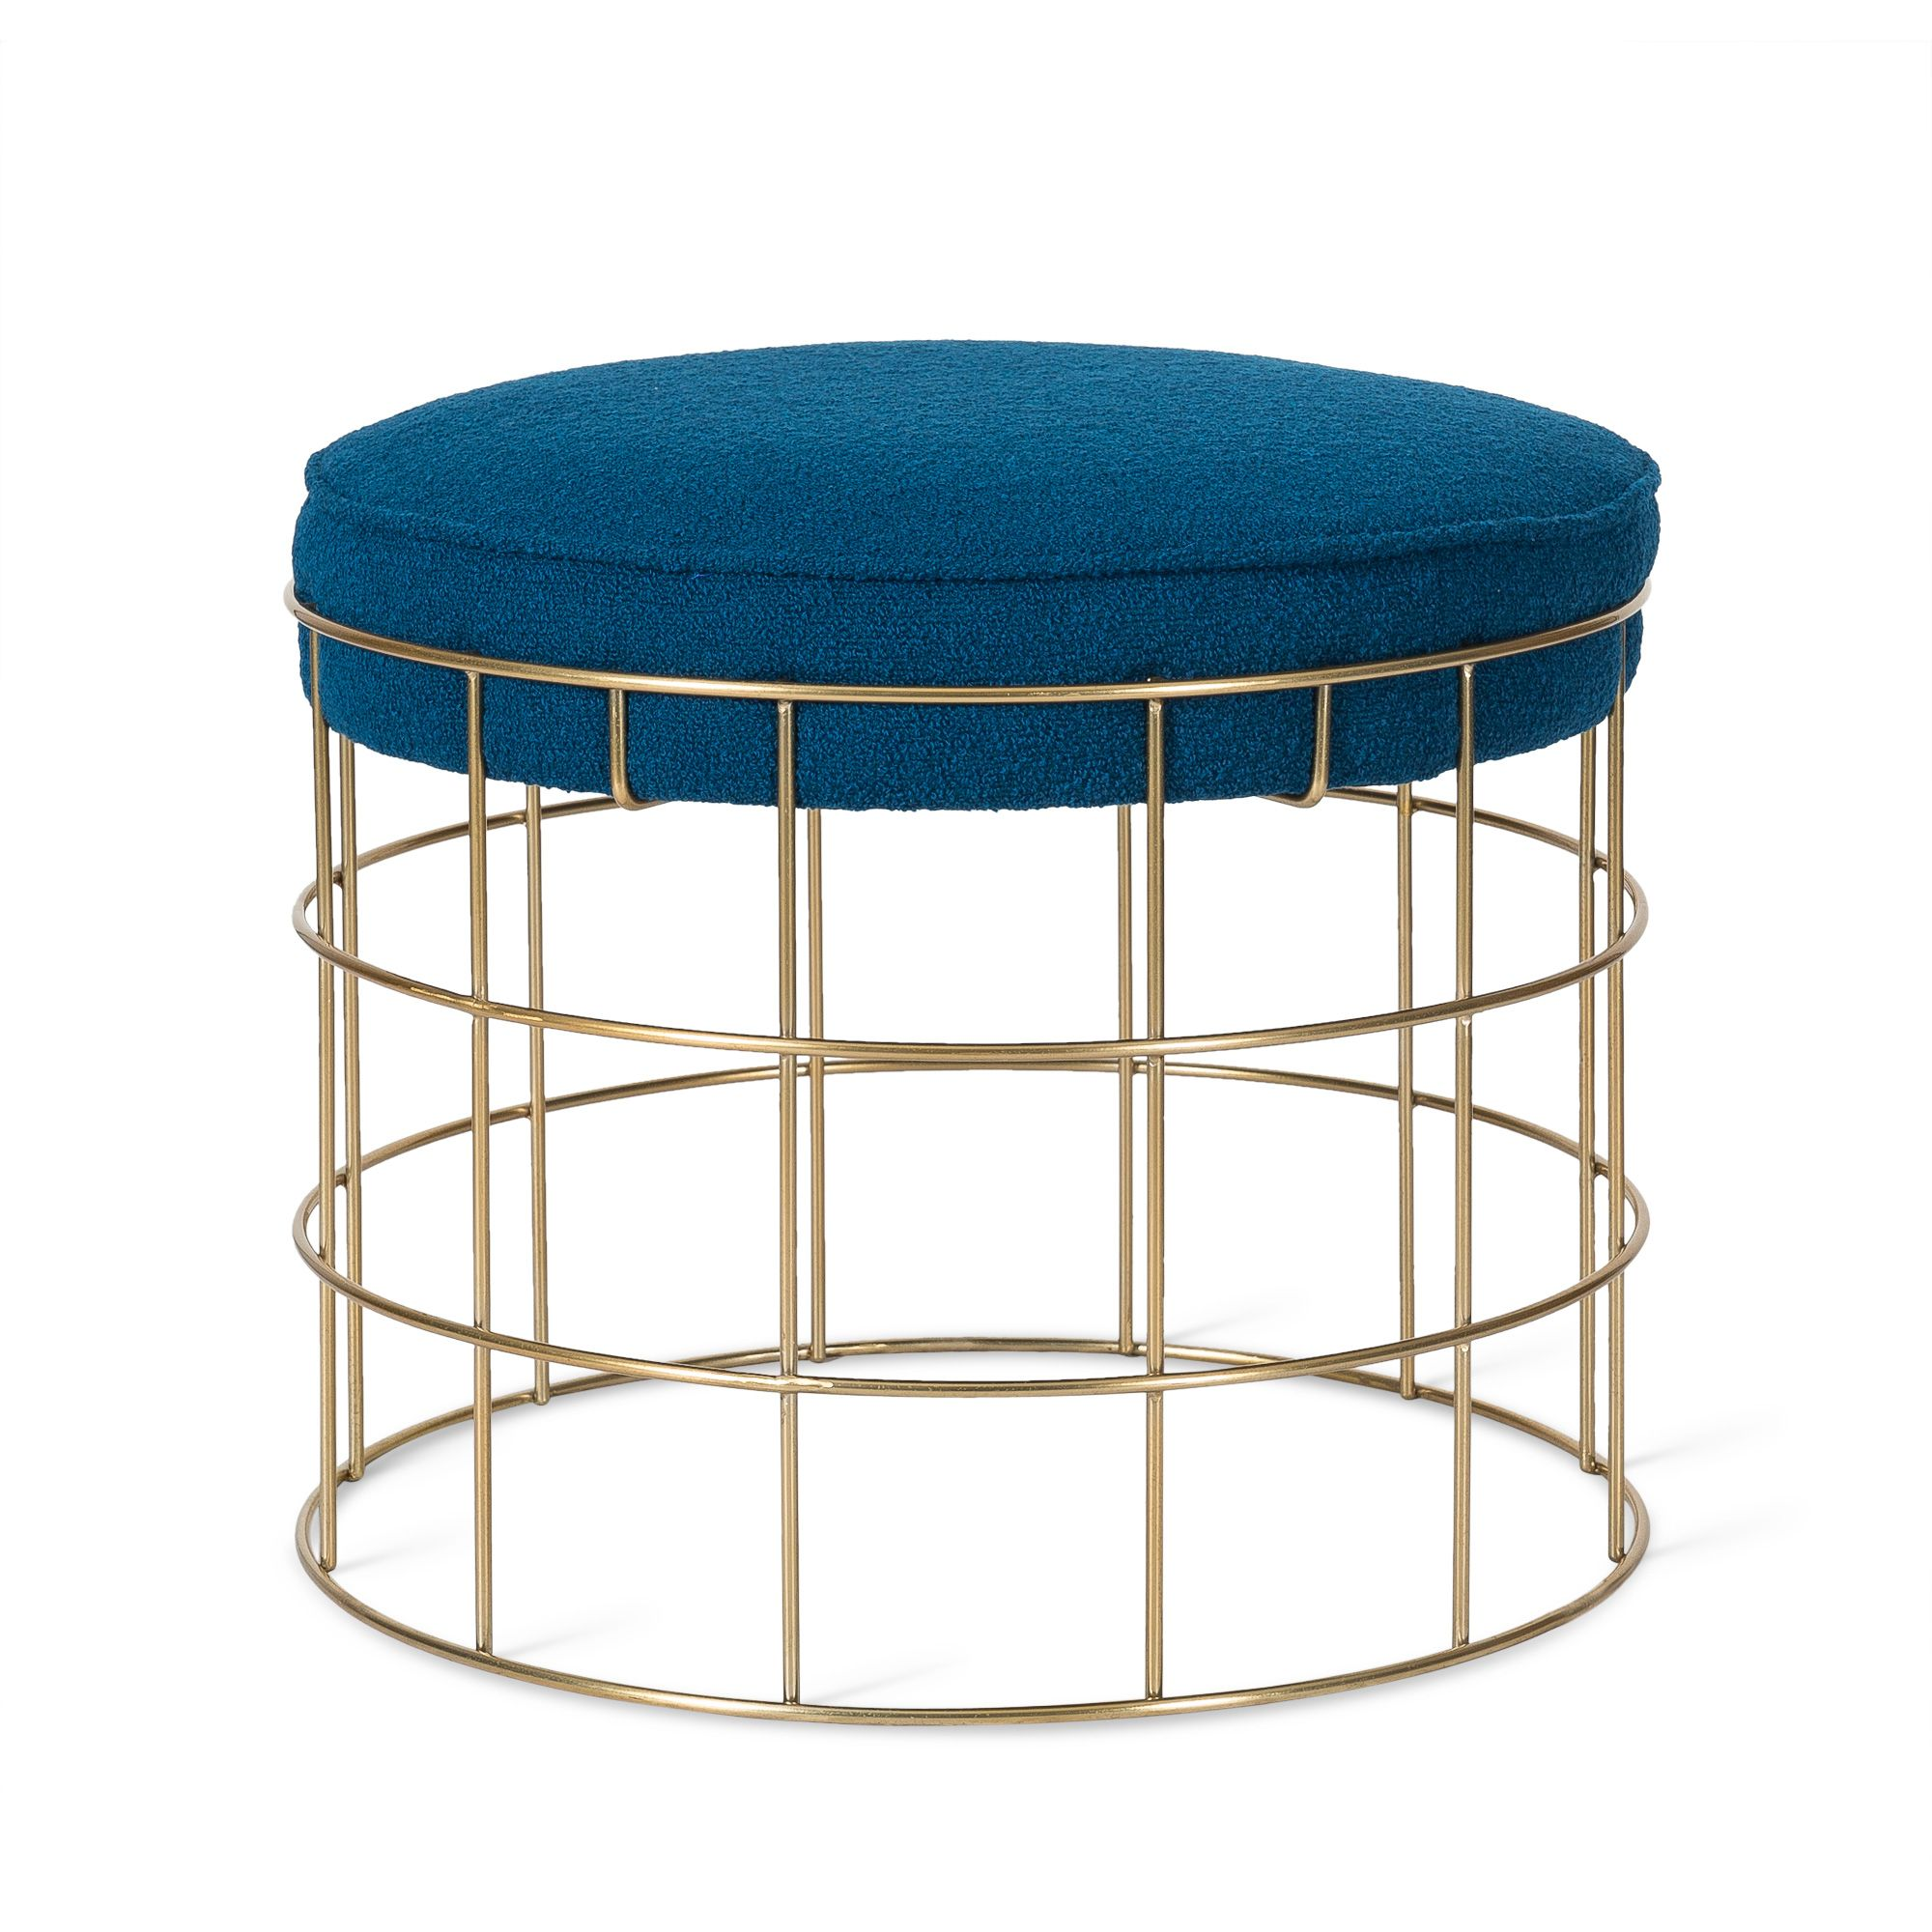 From Midnight To Duck Egg See: Gold Stool, Stool, Duck Egg Blue